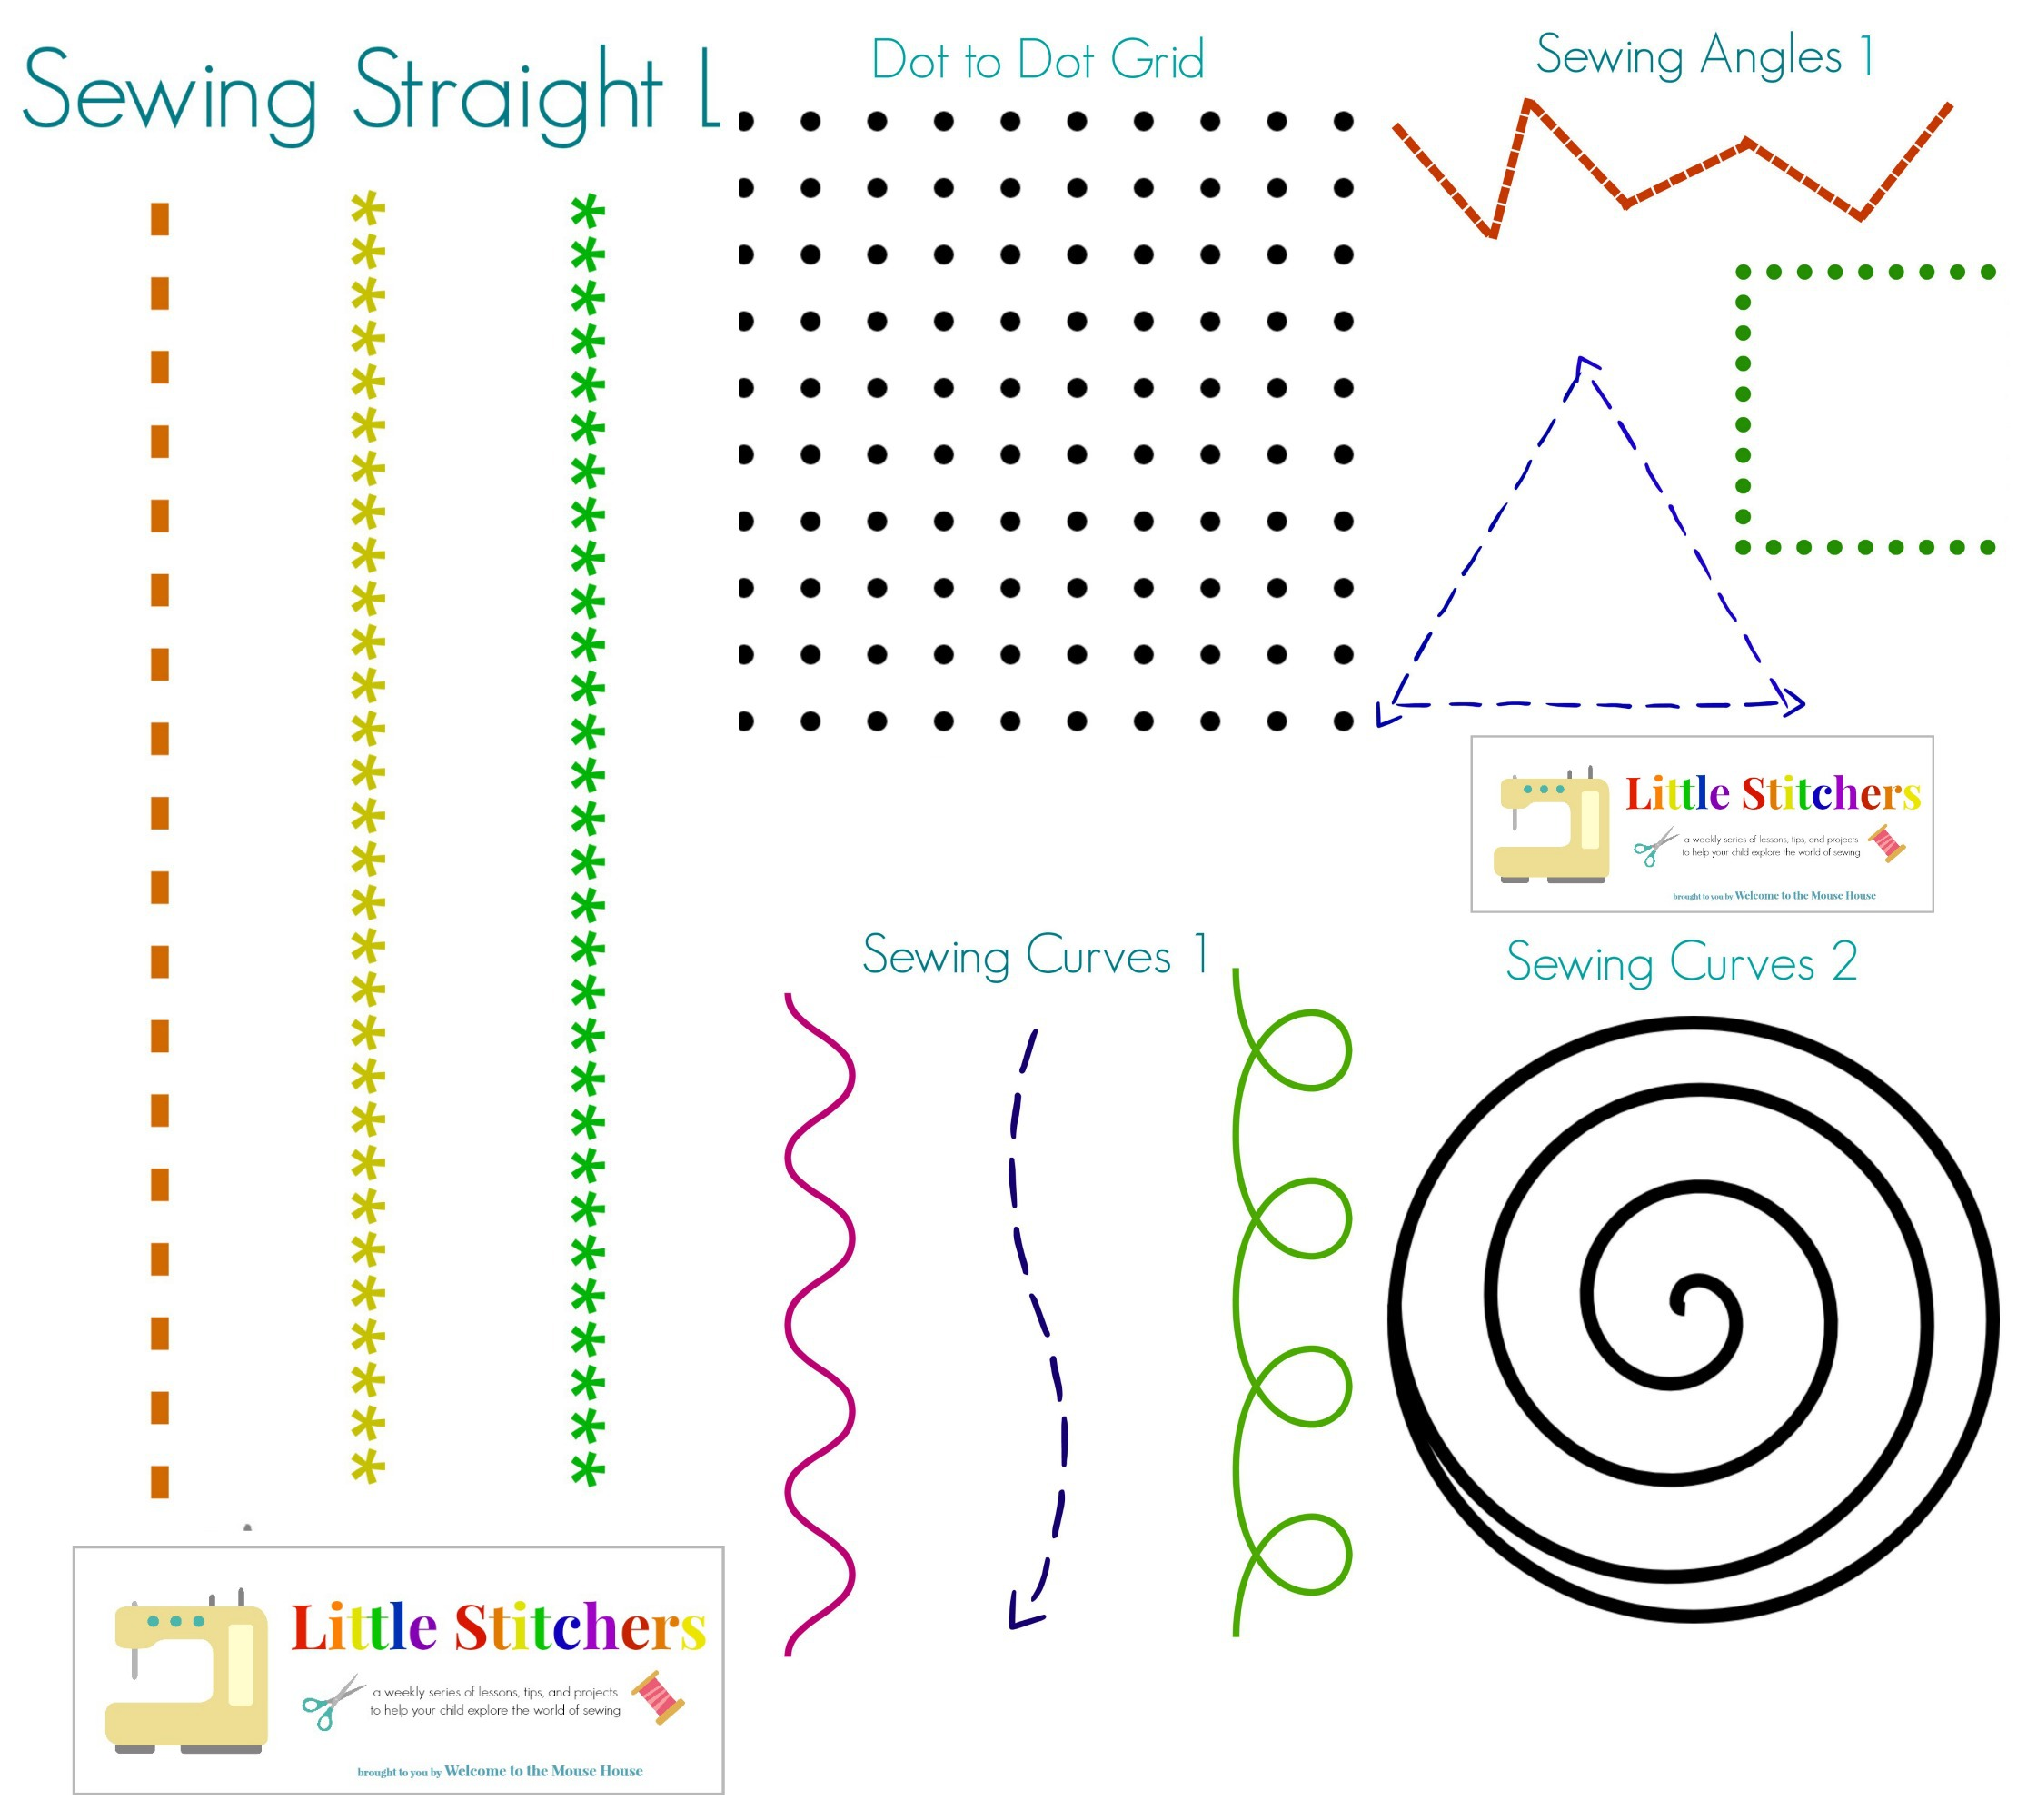 sewing in a straight line pdf download